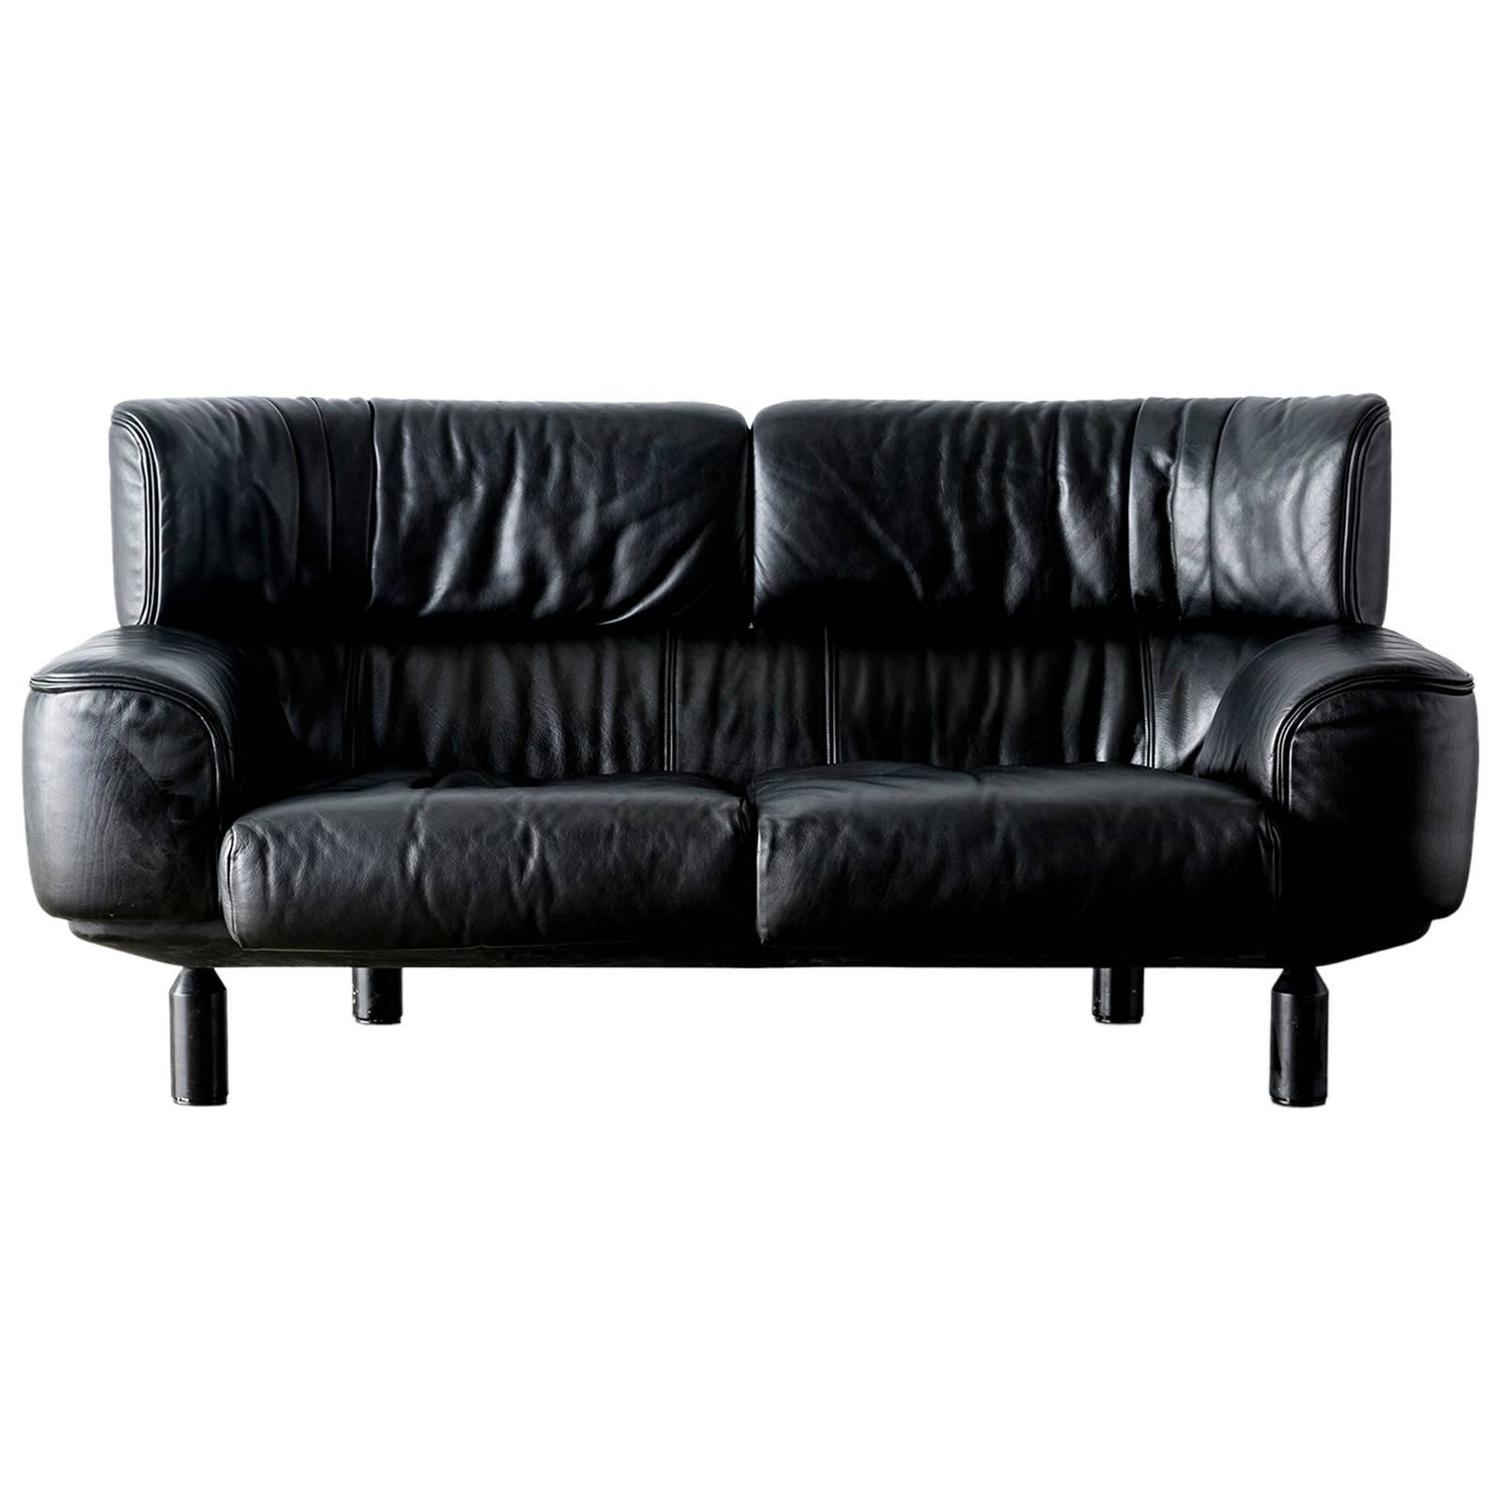 Cassina Furniture Sofas Chairs Tables & More 299 For Sale at